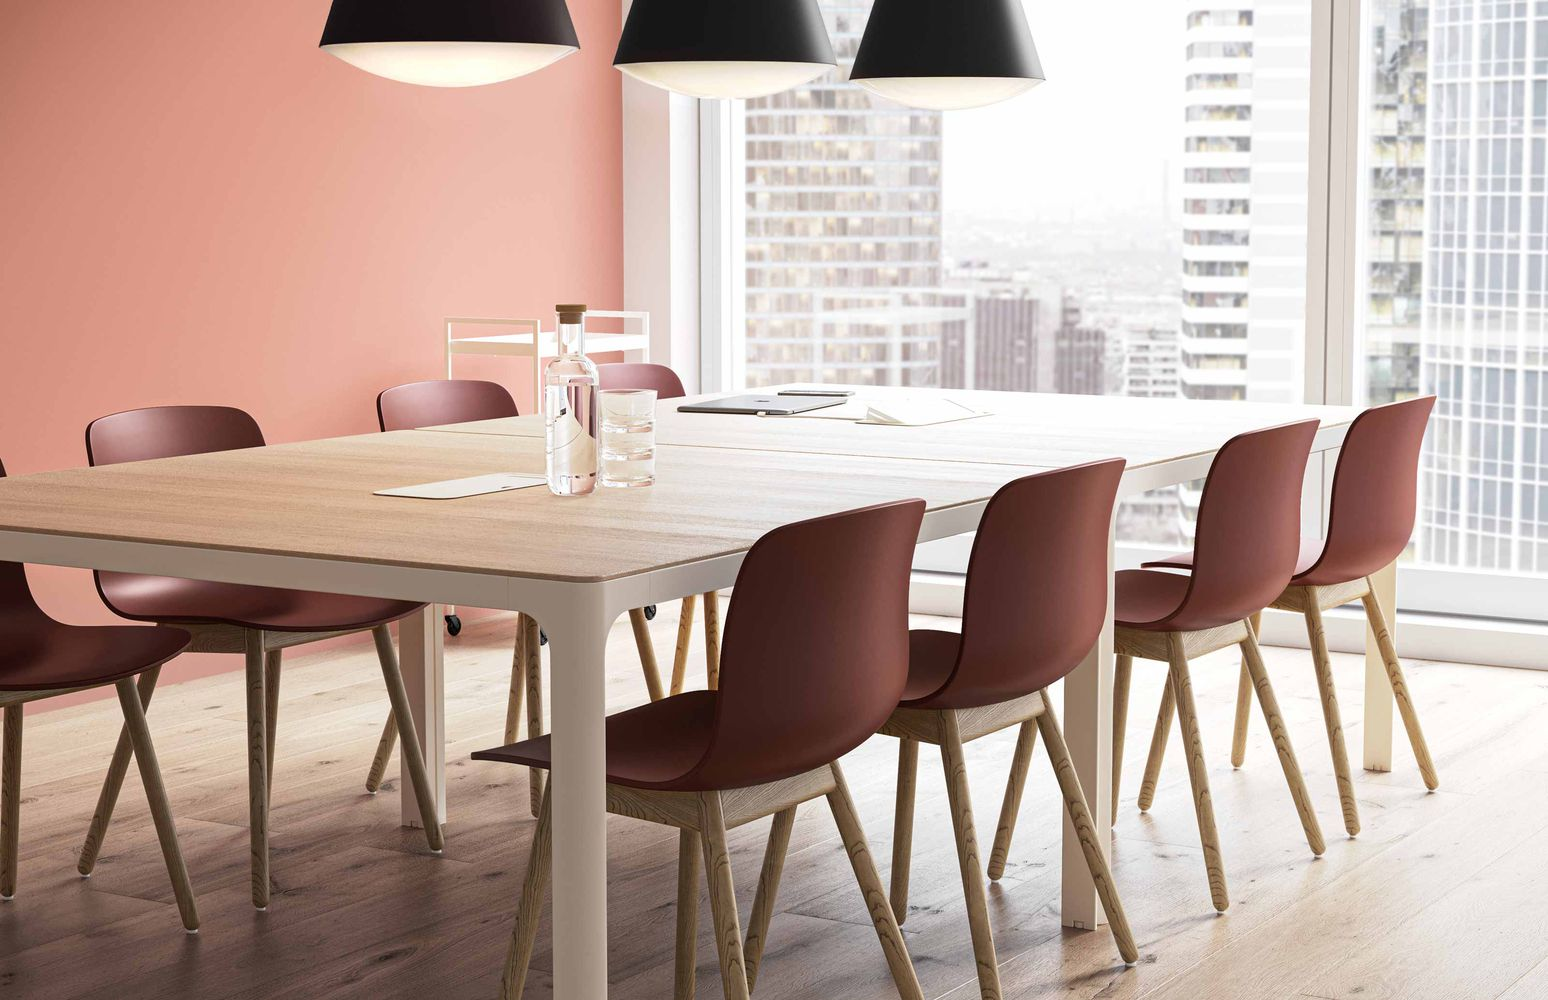 Meeting room with red accented chairs, wooden desk and pastel pink walls in Nordic Light